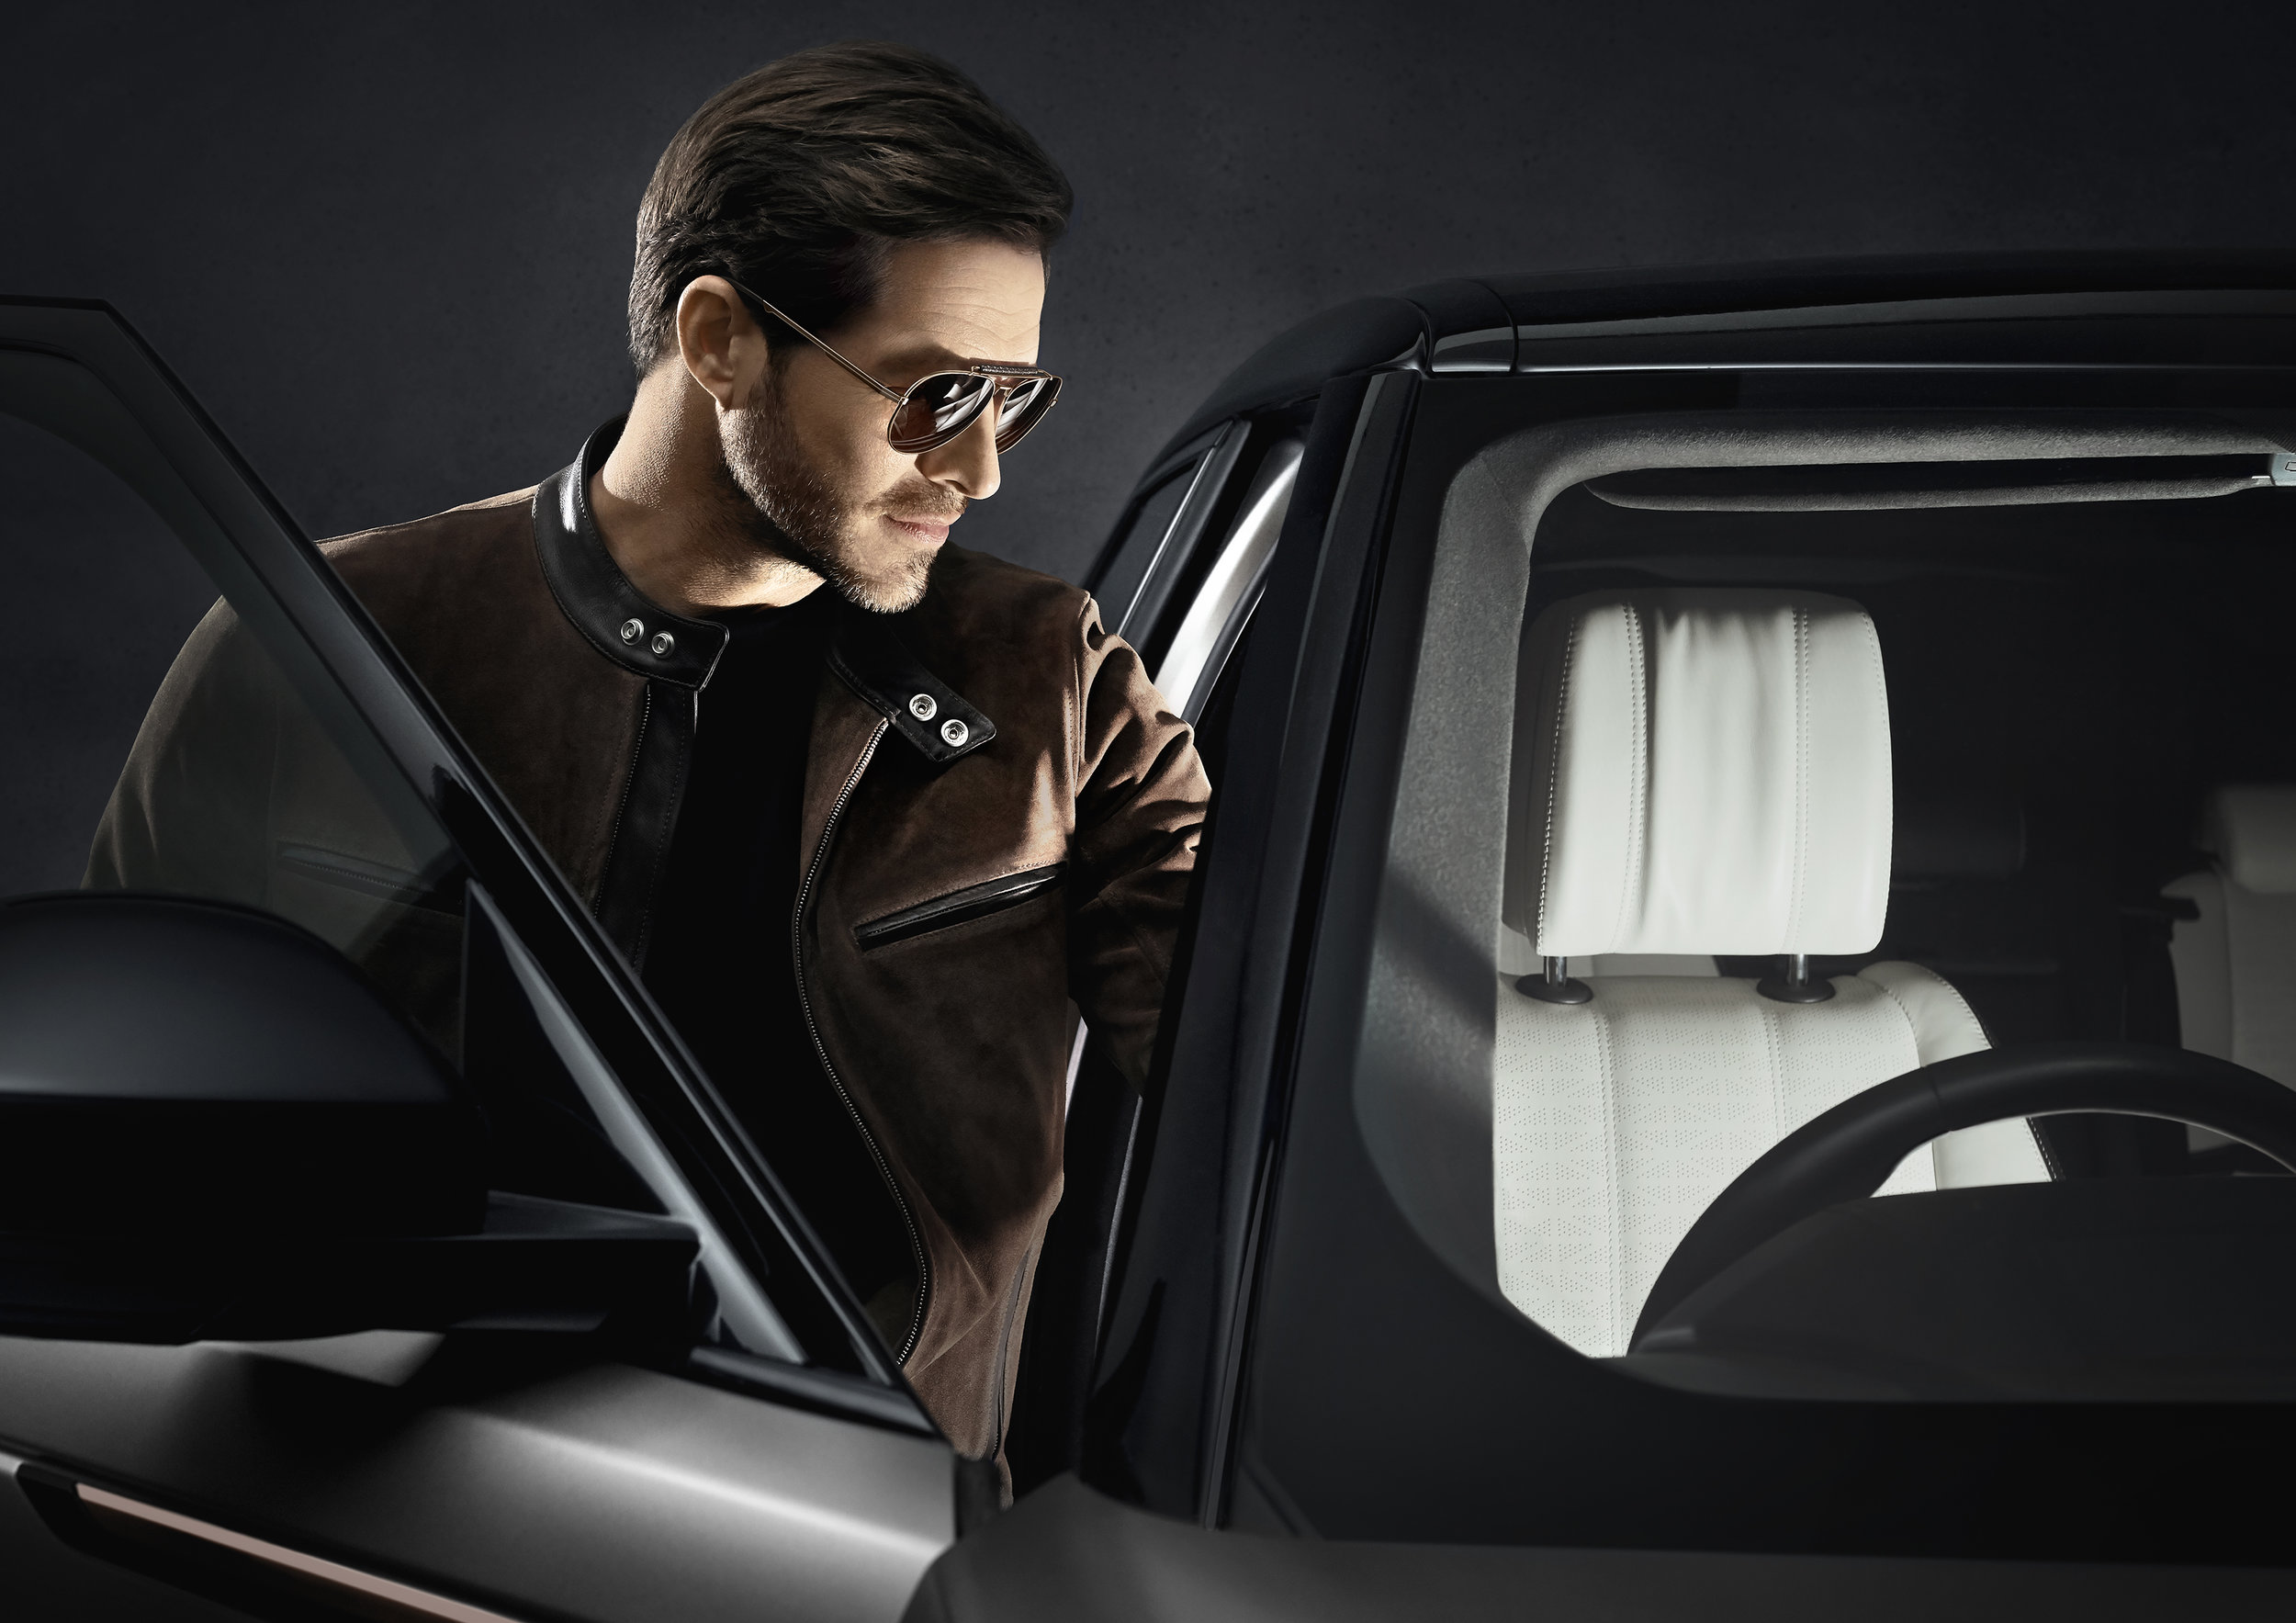 - The Range Rover 2019 Sun Collection is one of the latest additions to our wide range of brands here at Andrew & Rogers.To put it simply, Range Rover Eyewear is the ultimate luxury fashion accessory for the modern man.